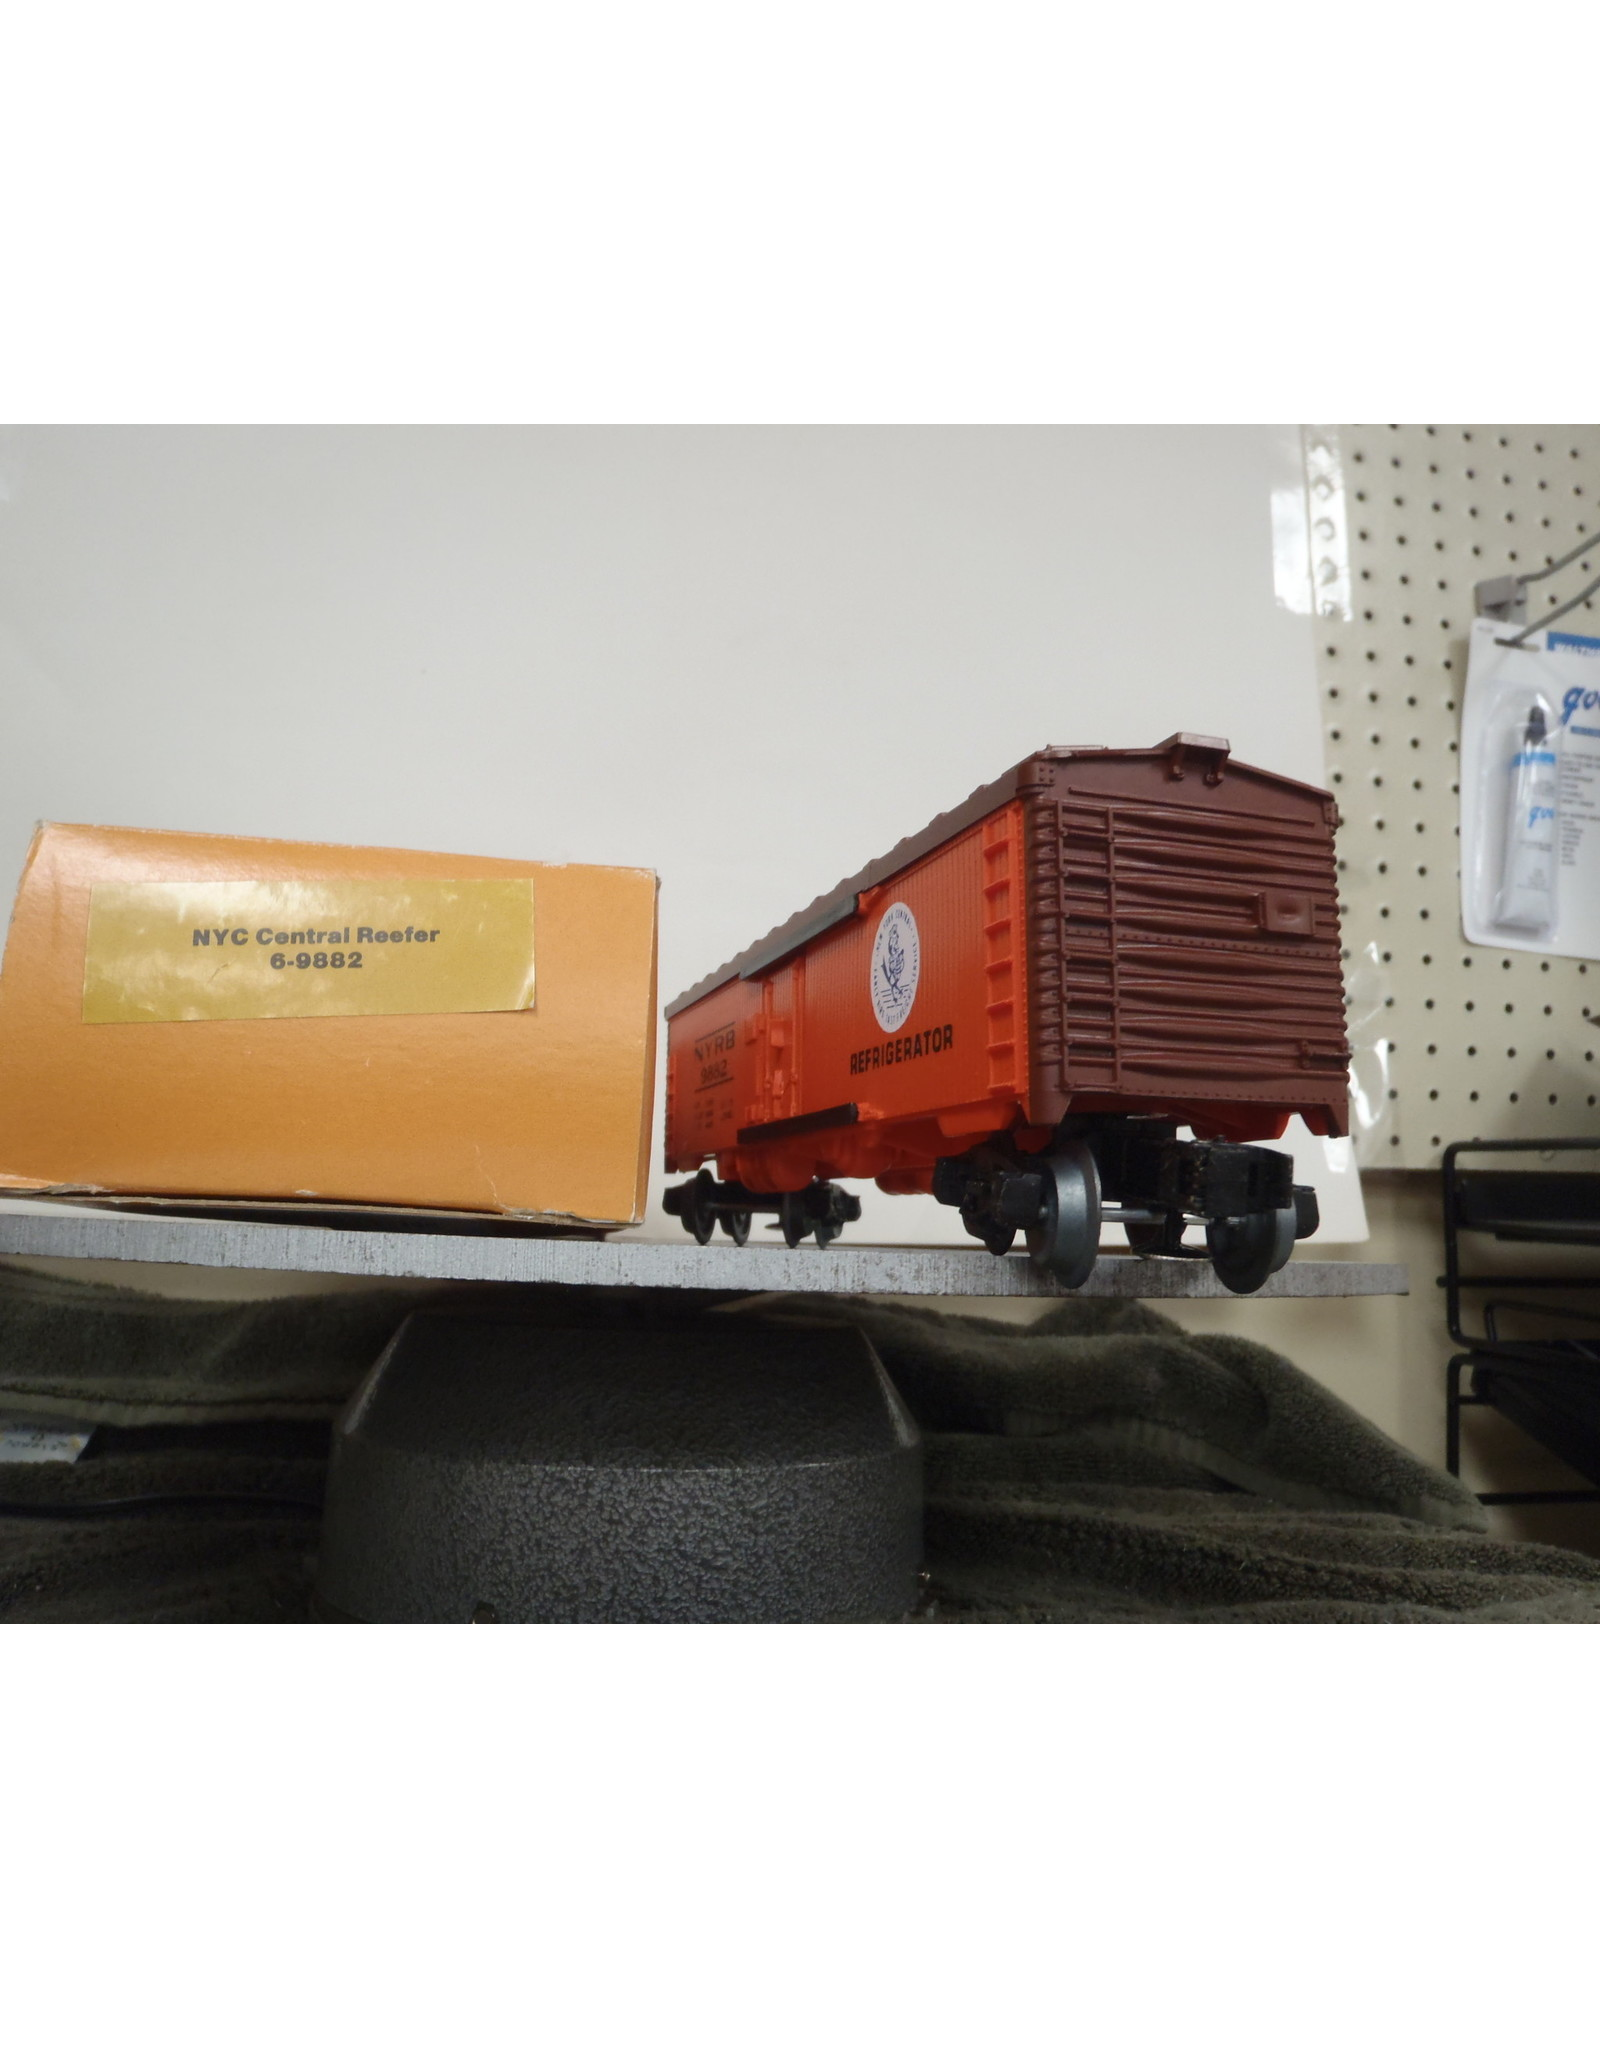 Lionel Reefer NYC Central Limited Edition 9882